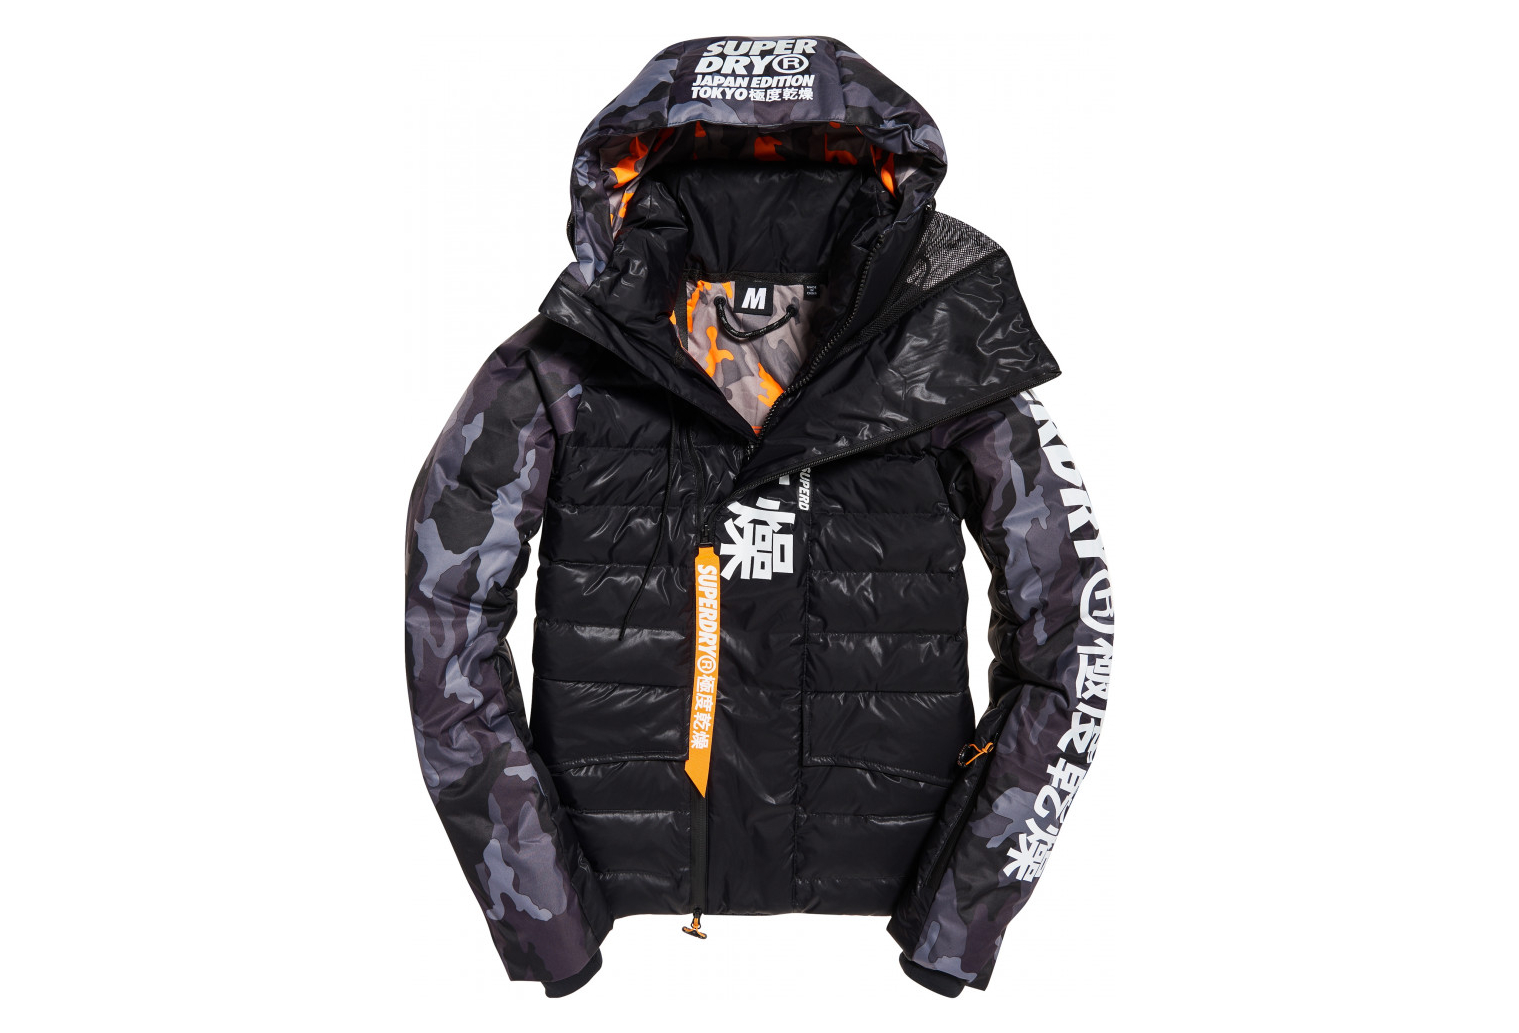 grand choix de 1cc02 f3f8f Veste De Ski Superdry Japan Edition Snow Down Jacket Camo